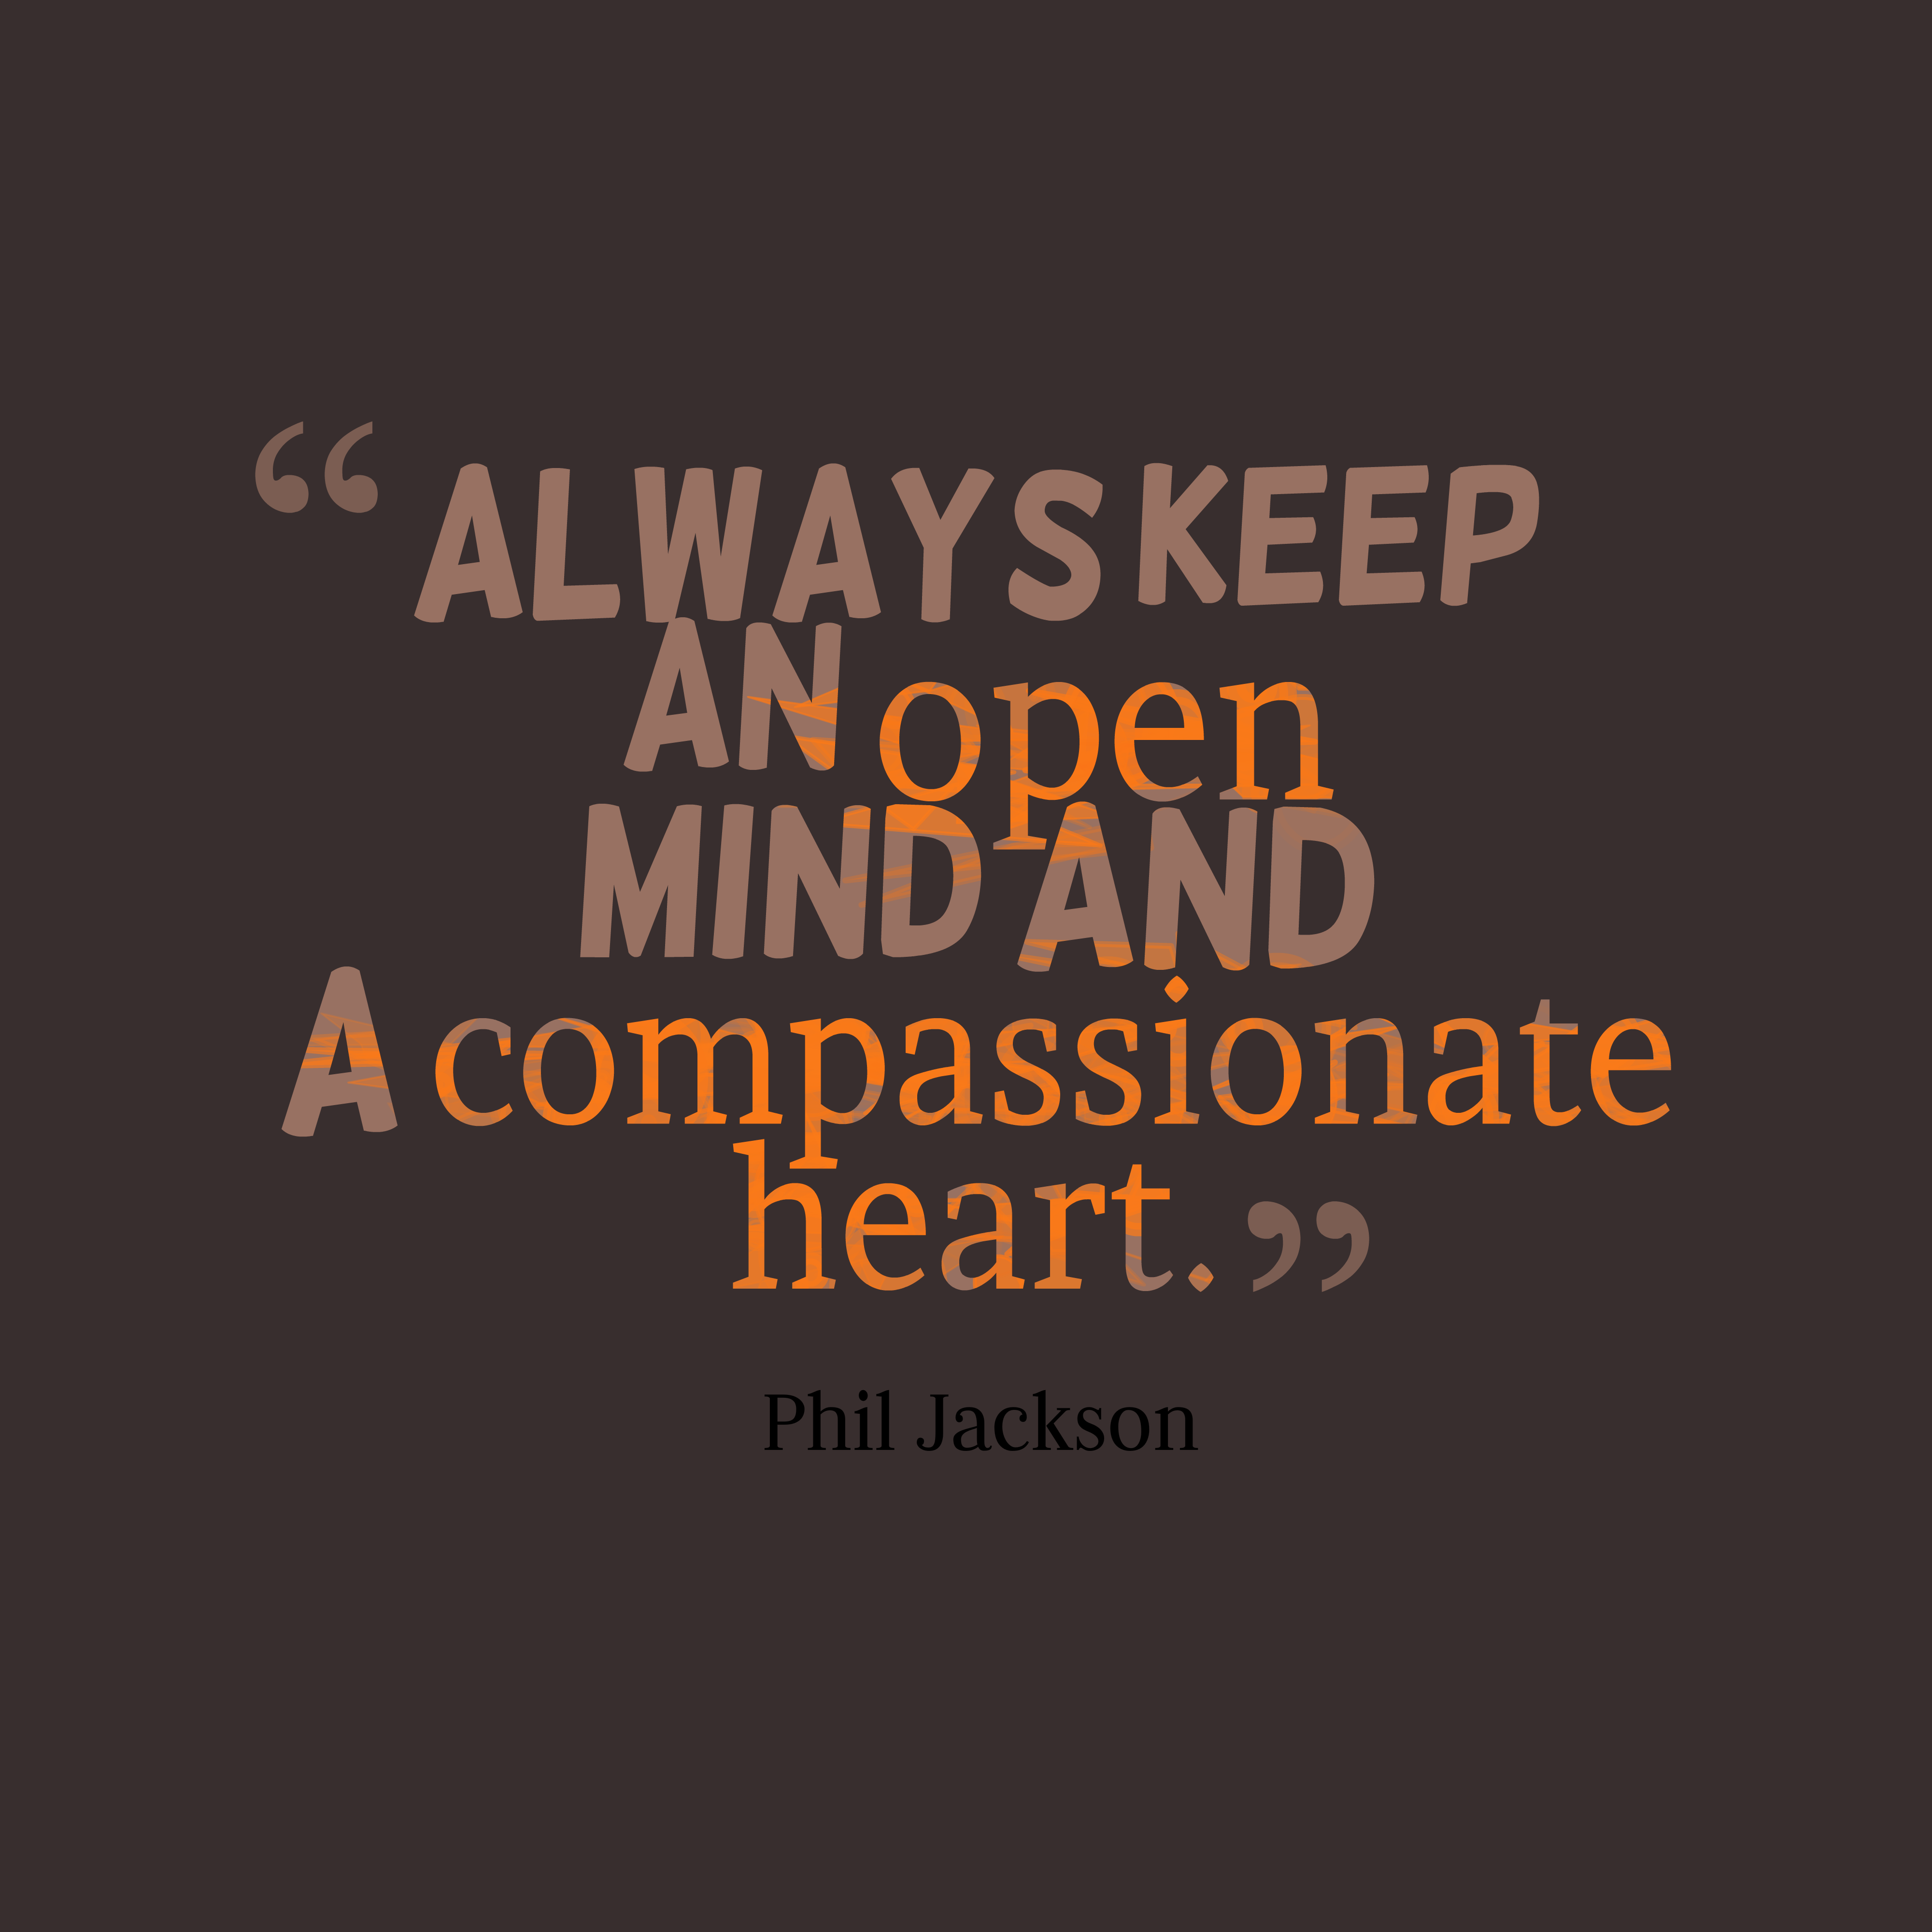 Phil Jackson Quote About Wisdom